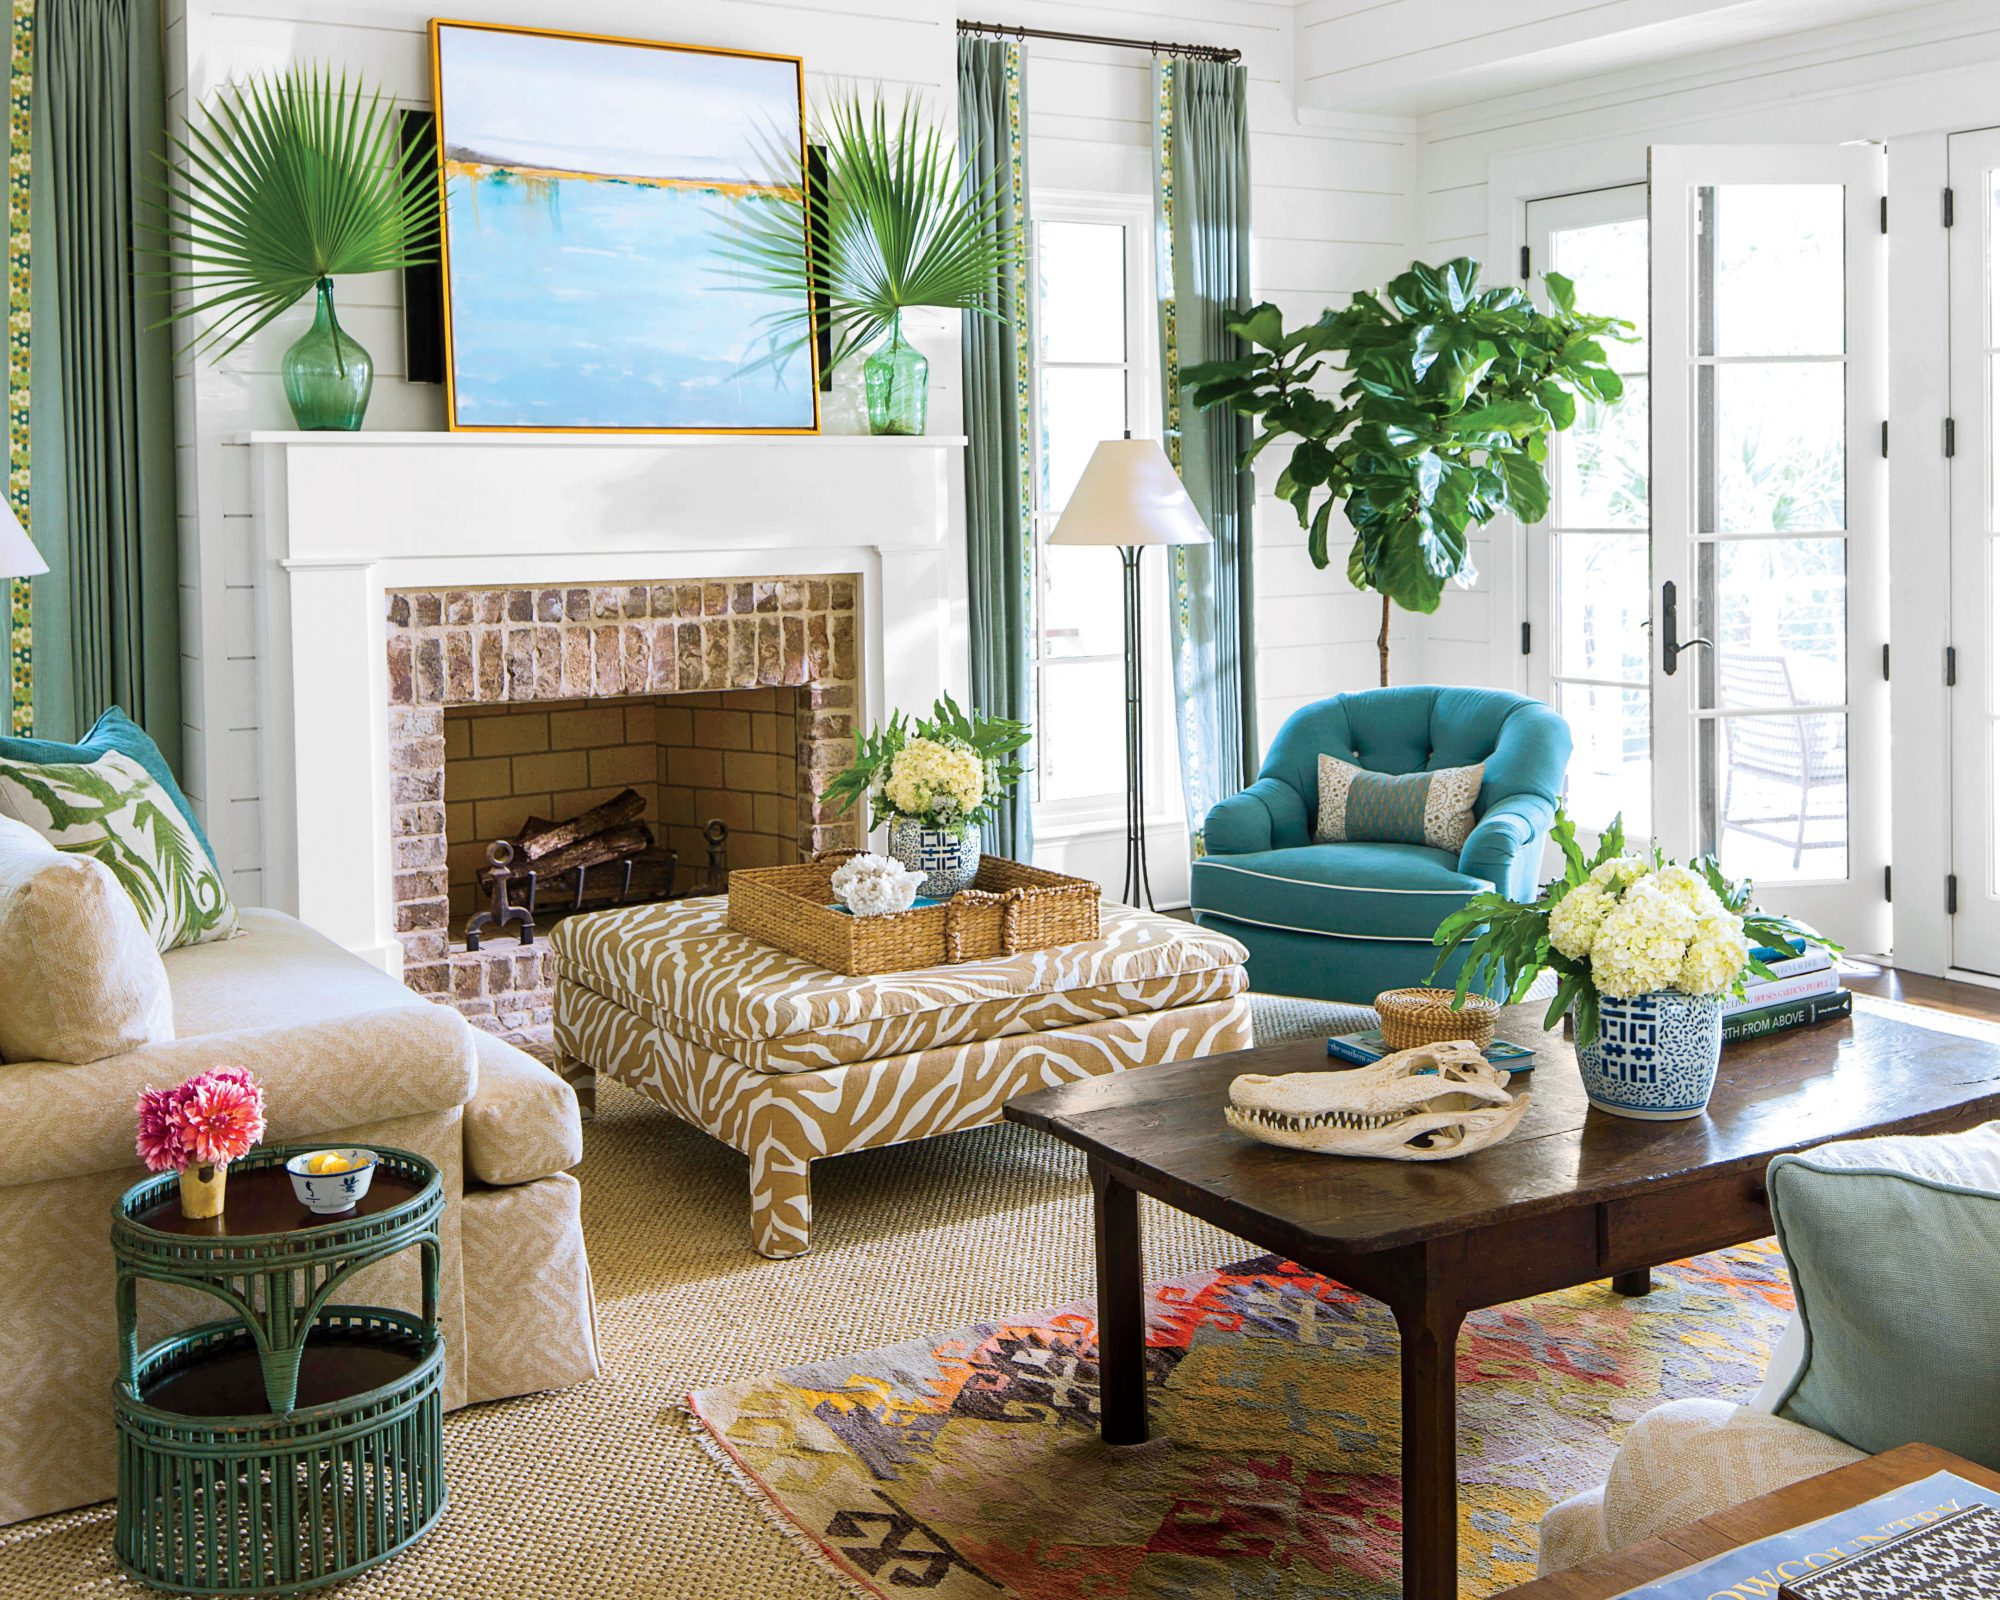 Living Room Decor Ideas Pictures Interesting 106 Living Room Decorating Ideas  Southern Living Review